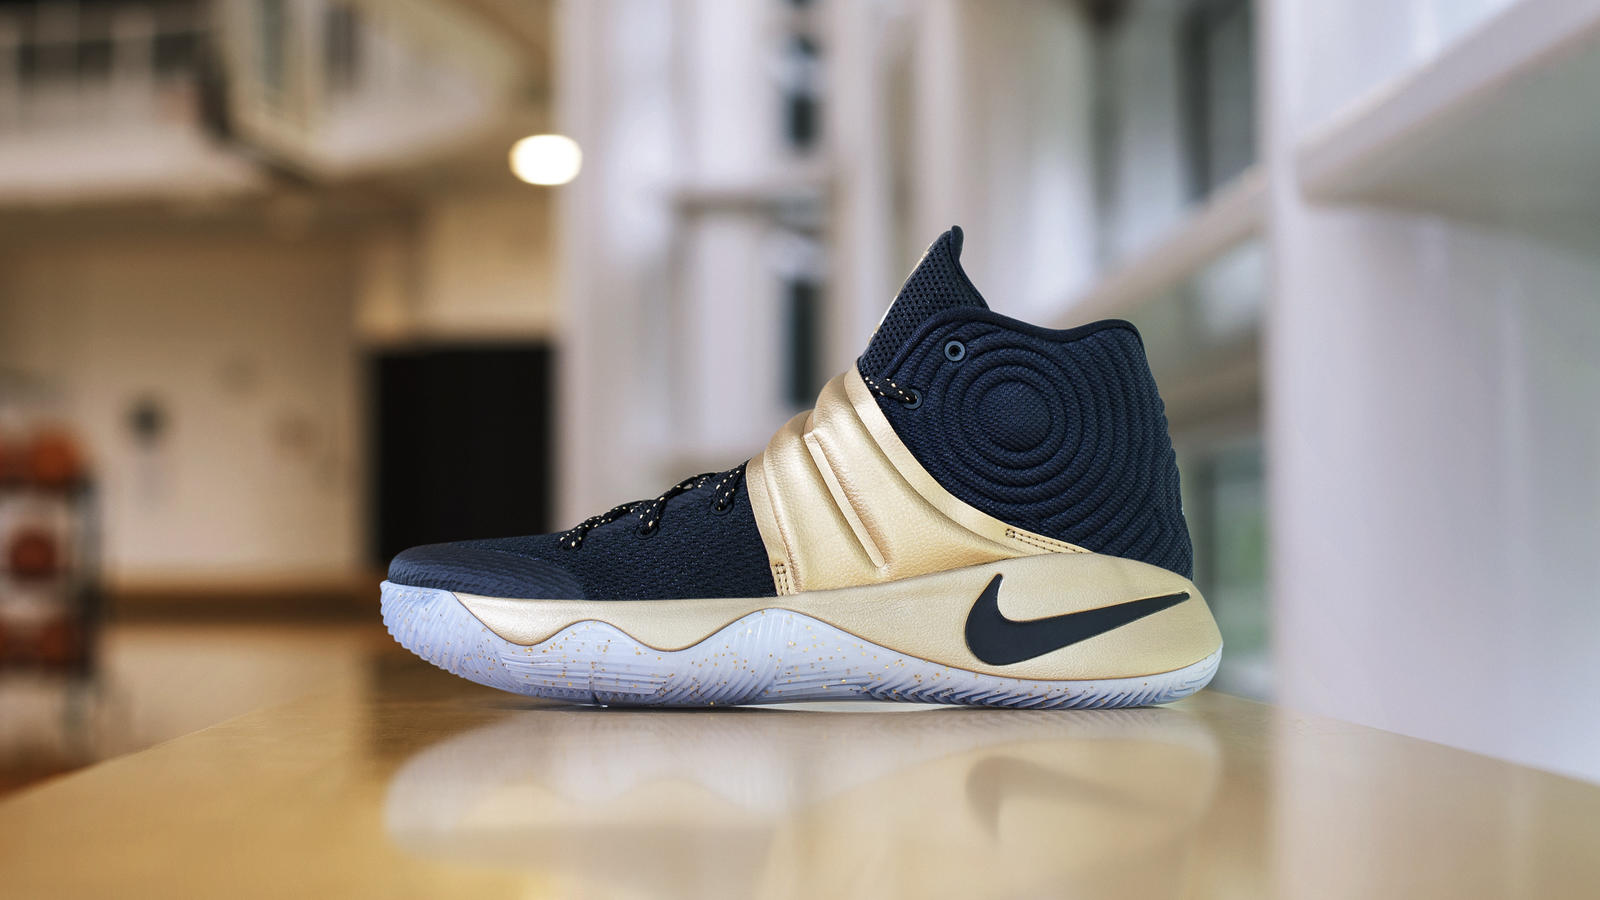 Kyrie navy gold dsc 4263 hd 1600